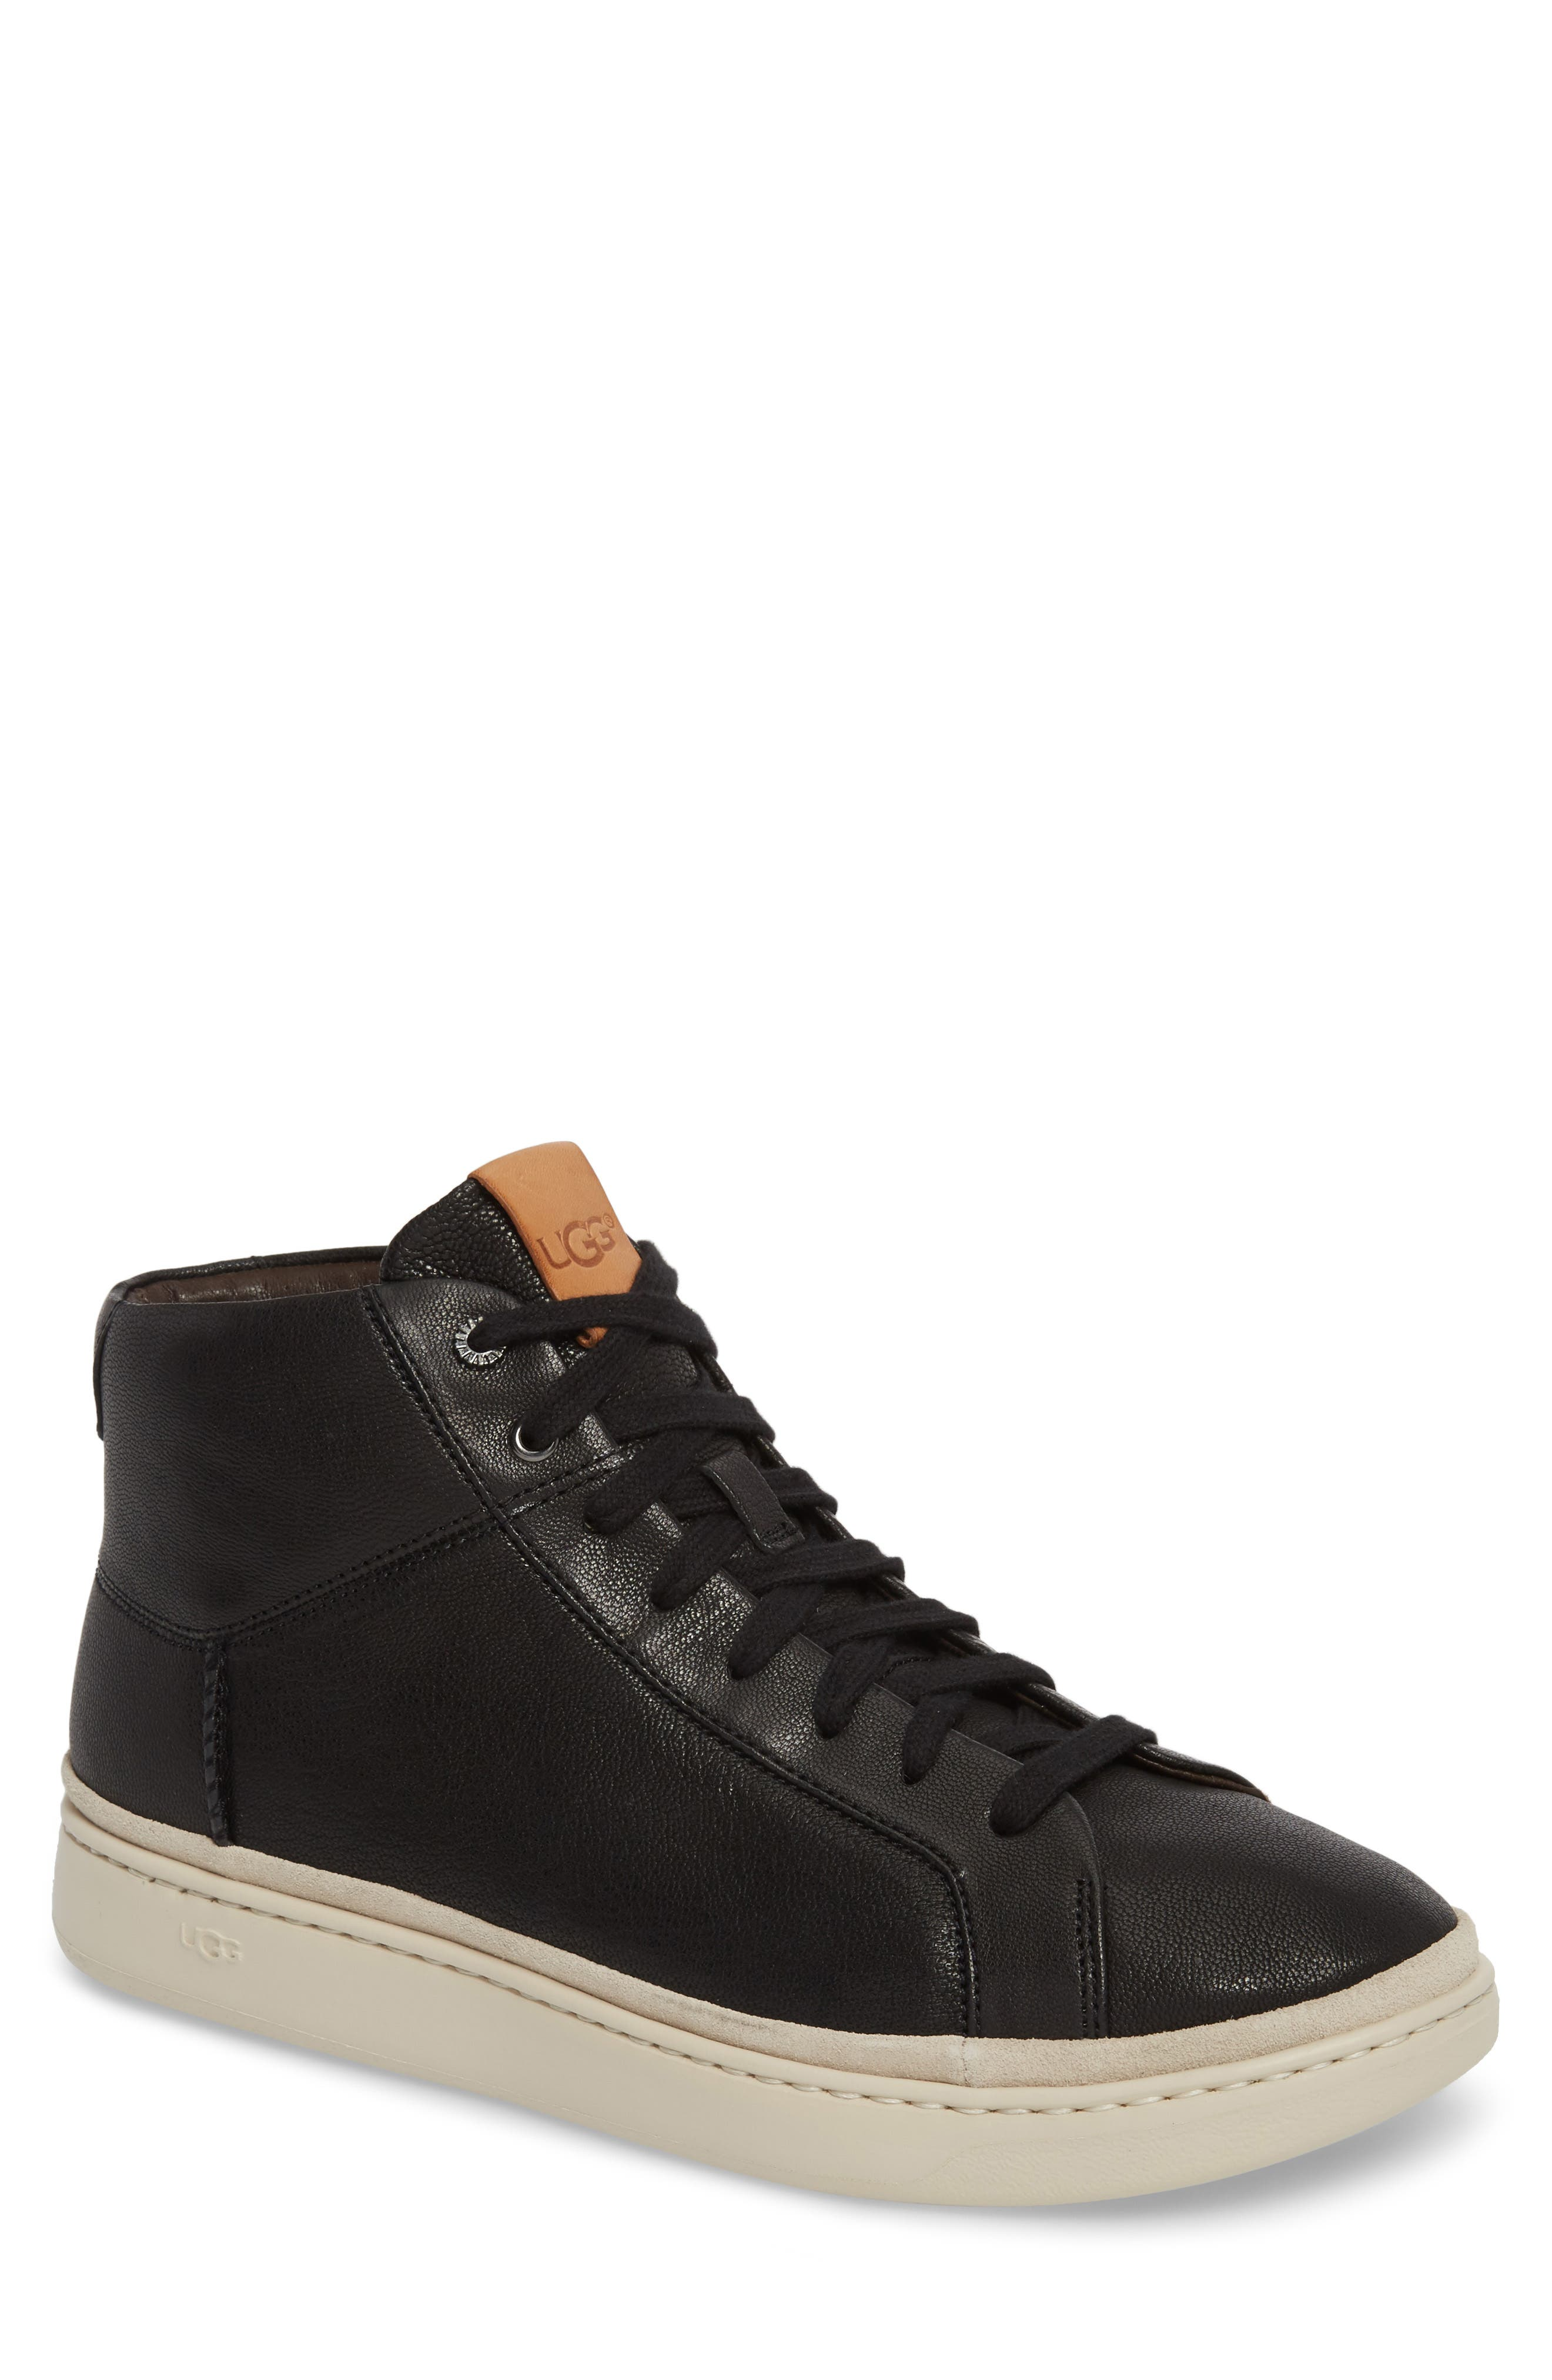 Cali High Top Sneaker, Main, color, BLACK LEATHER